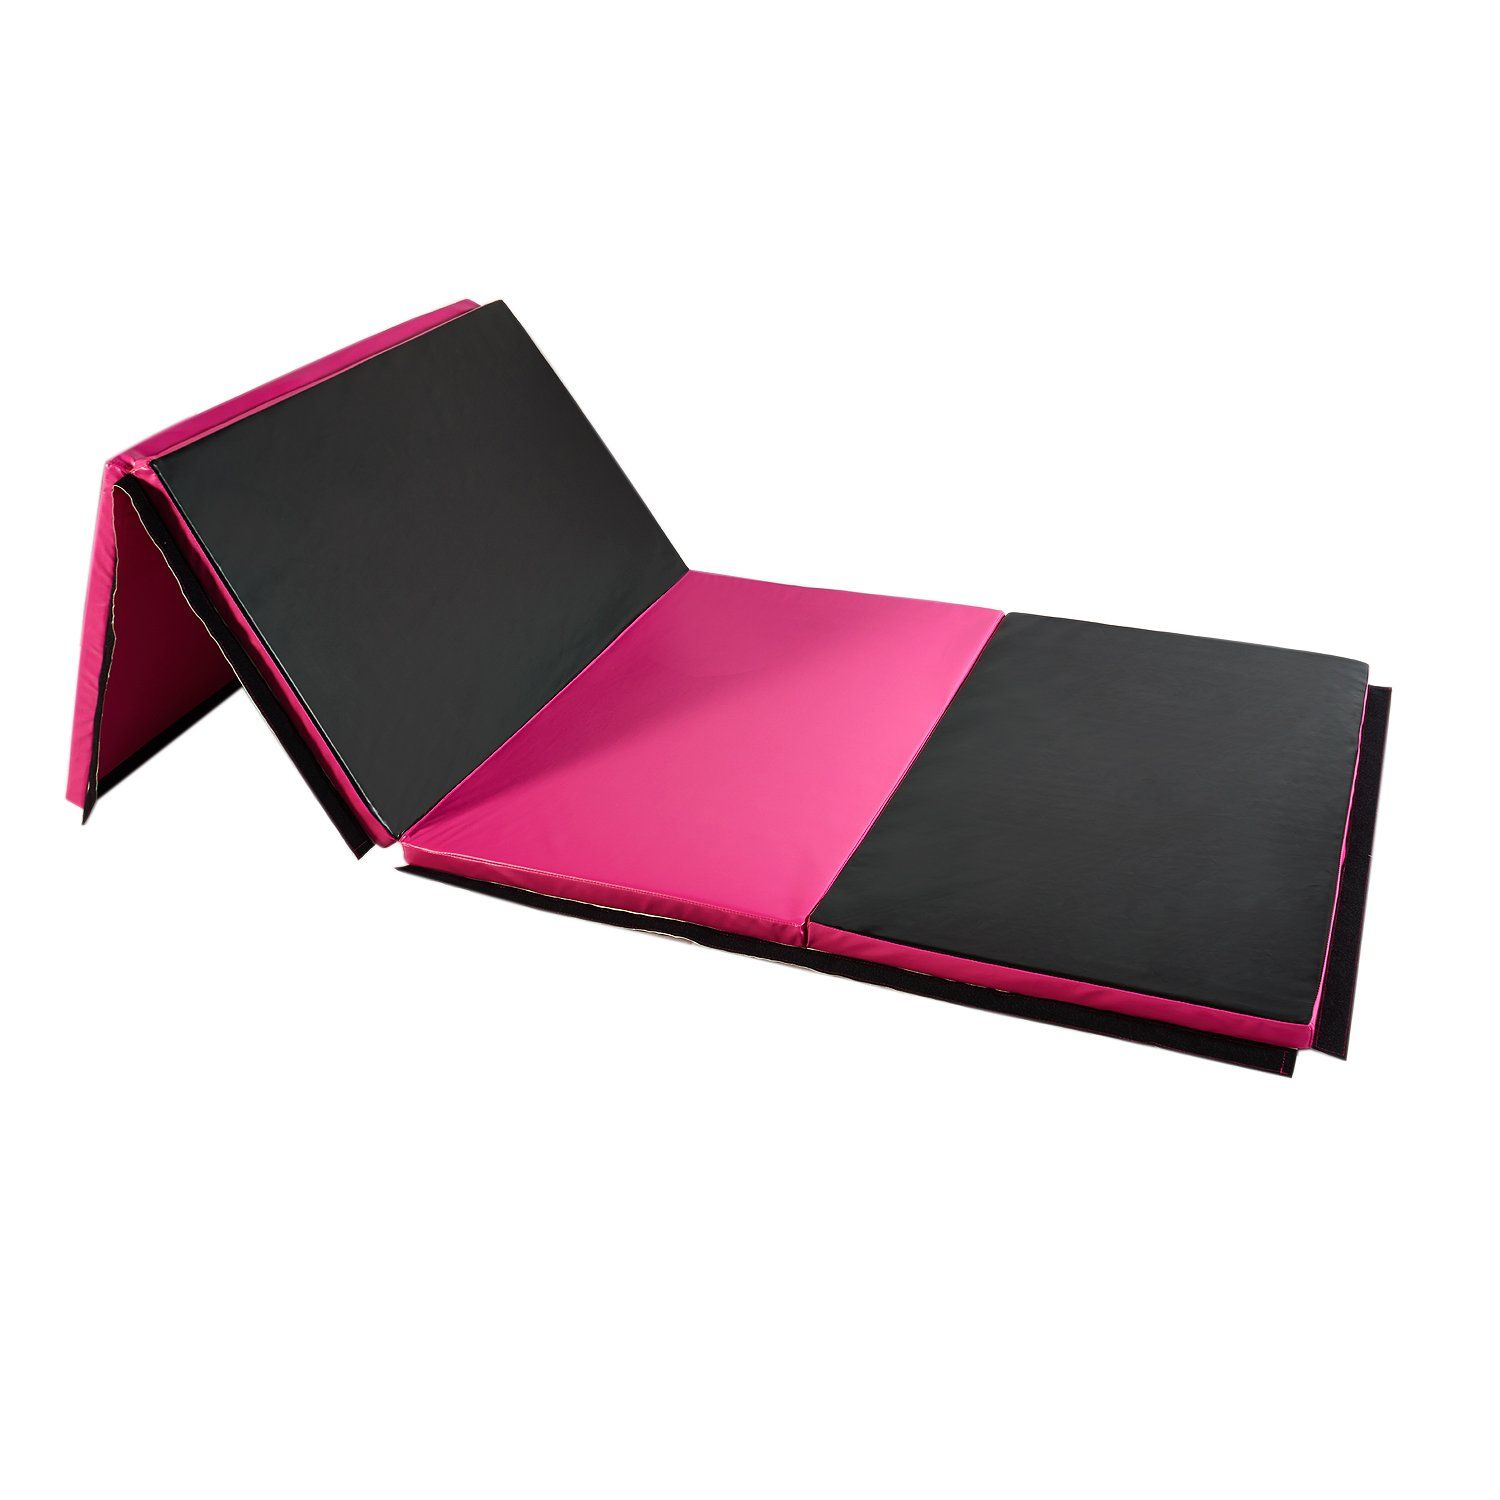 important gymnasticslab gym used but for reviews mat about simple sale cheap facts mats gymnastics